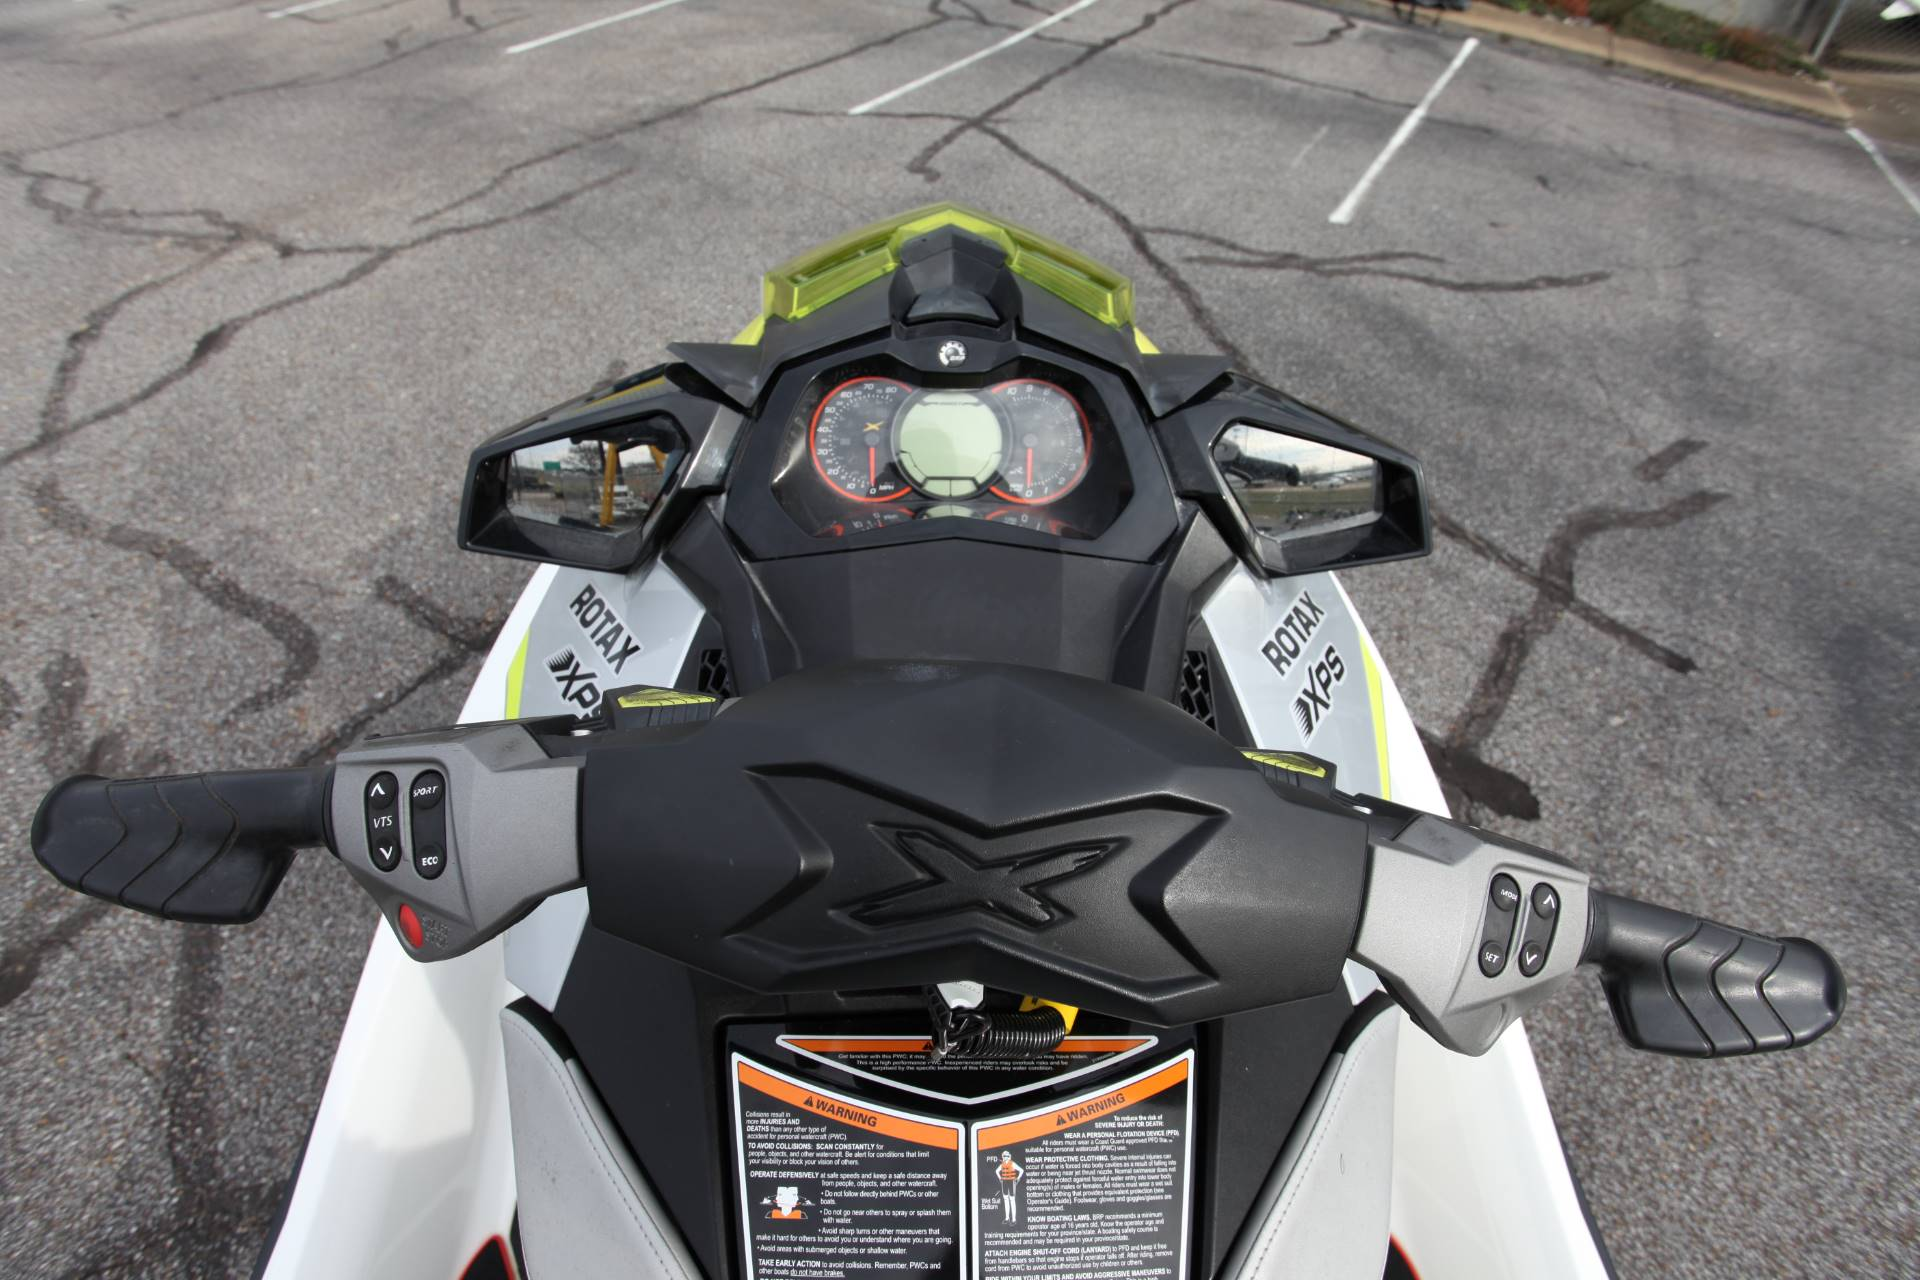 2017 Sea-Doo RXP-X 300 in Memphis, Tennessee - Photo 12